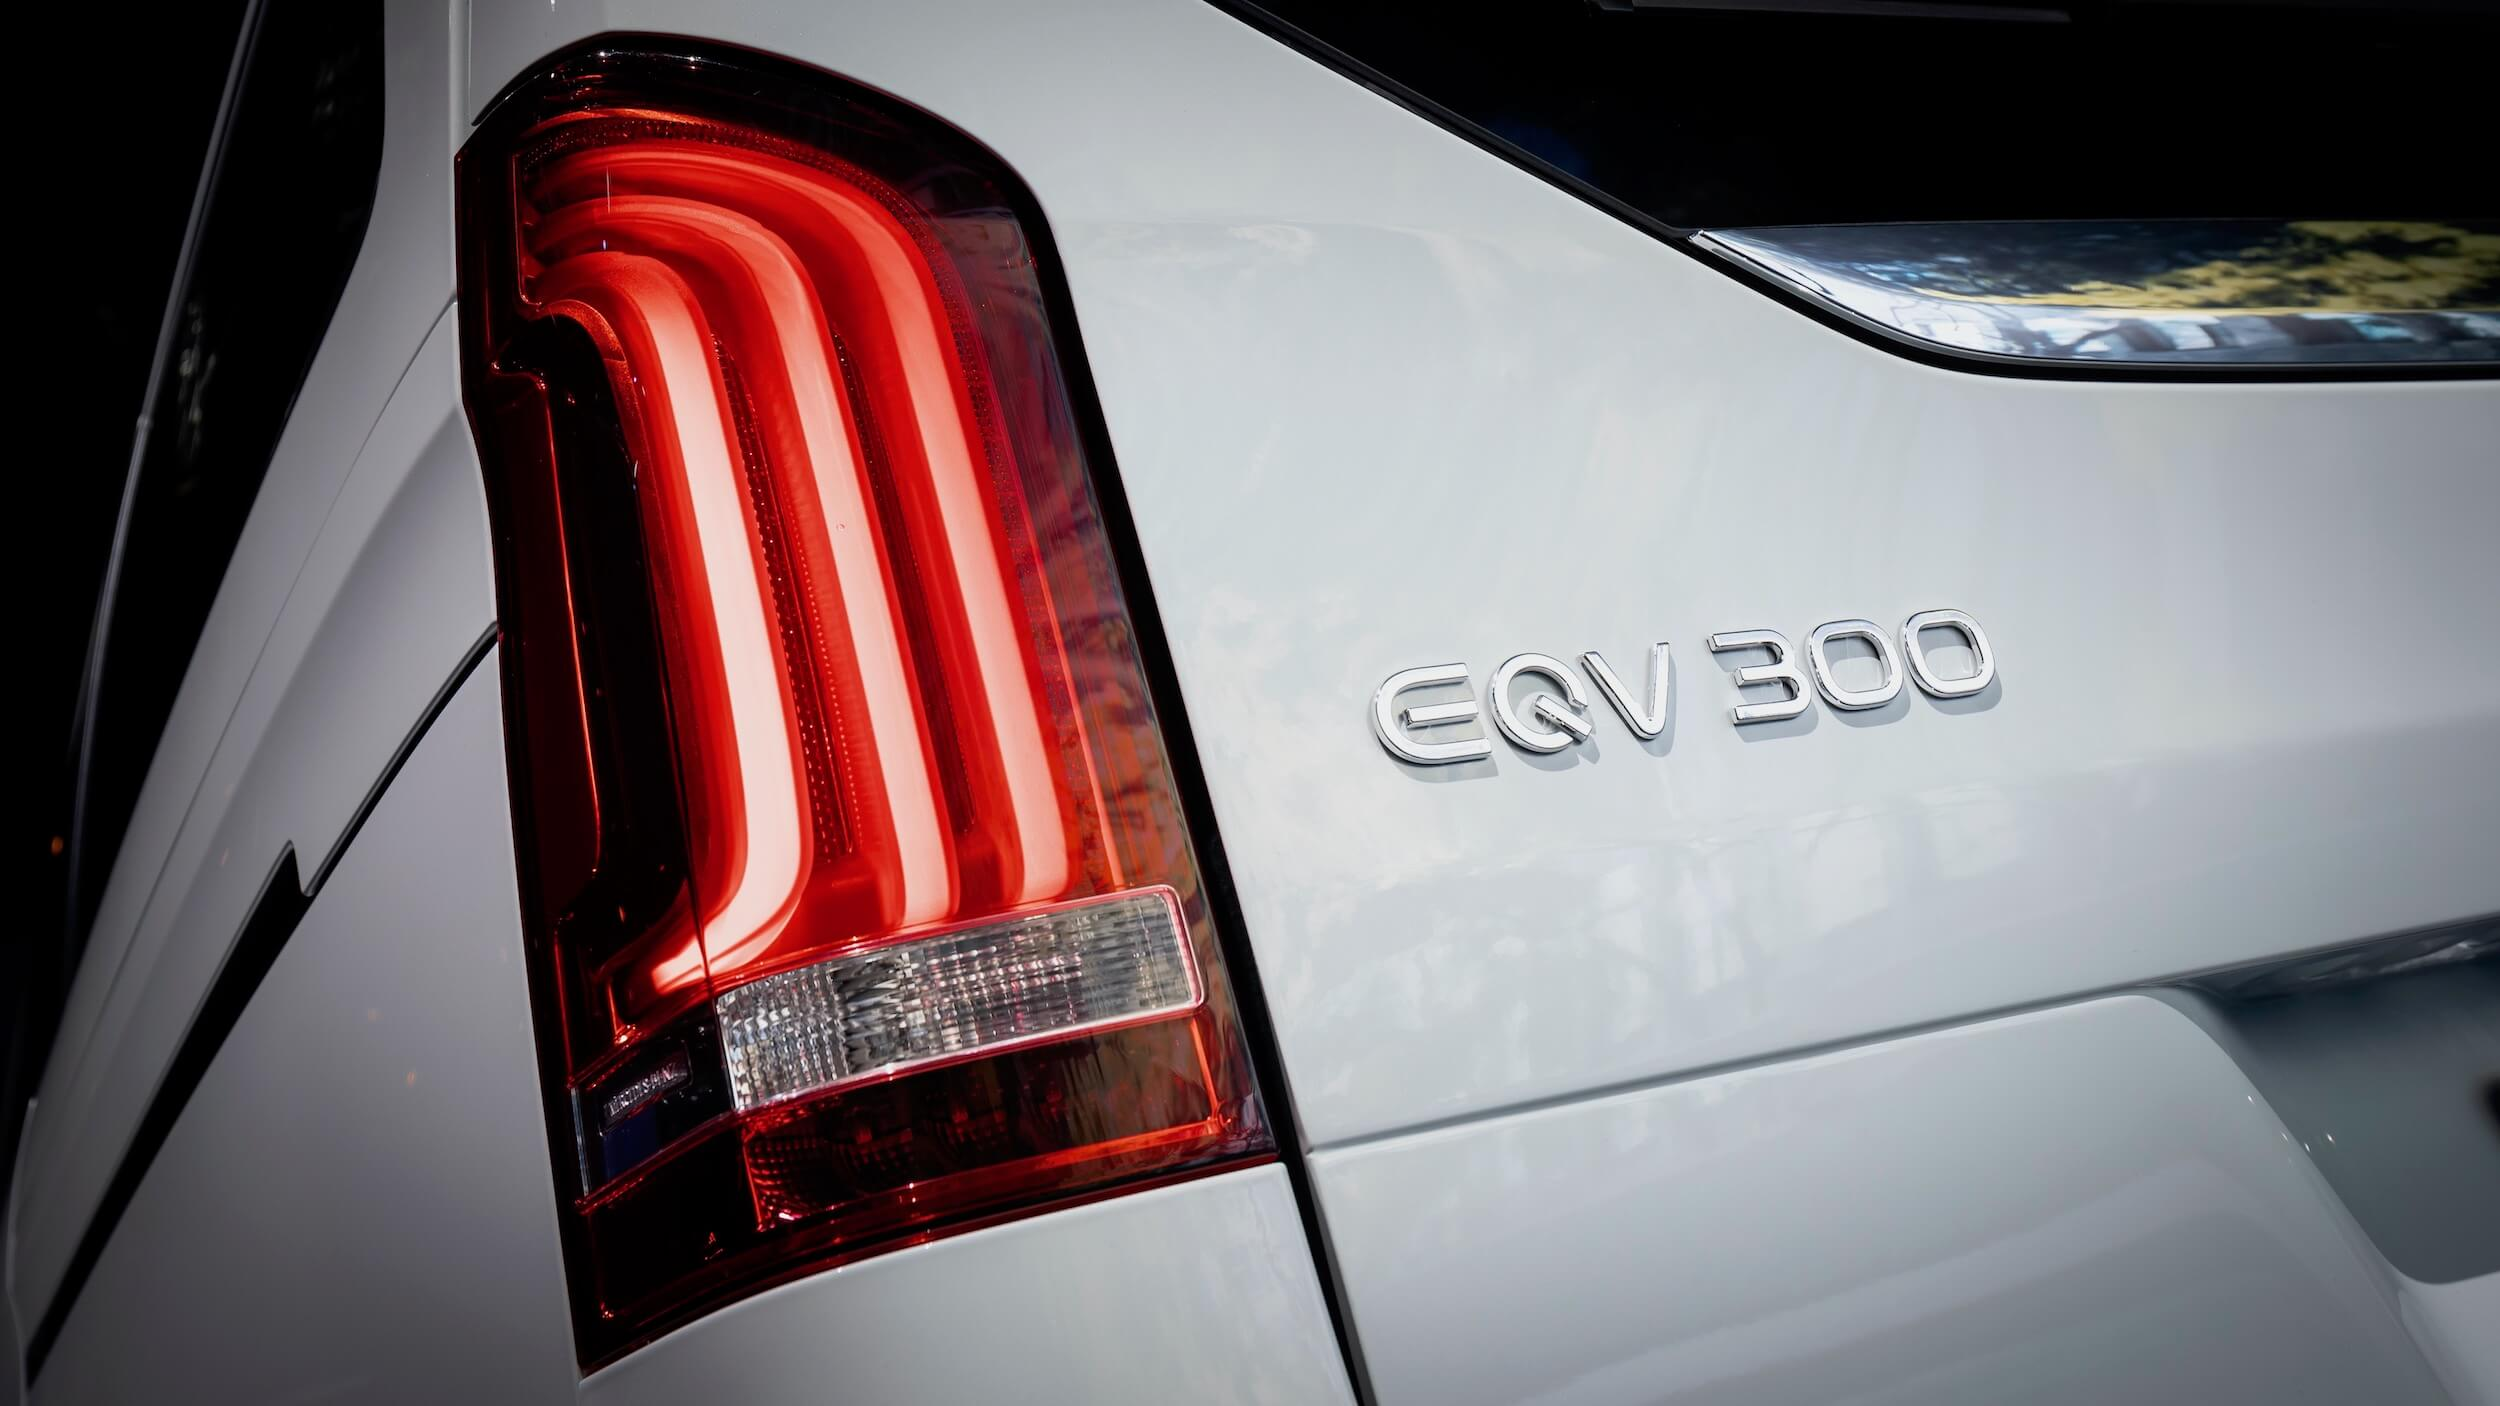 Mercedes EQV 300 badge